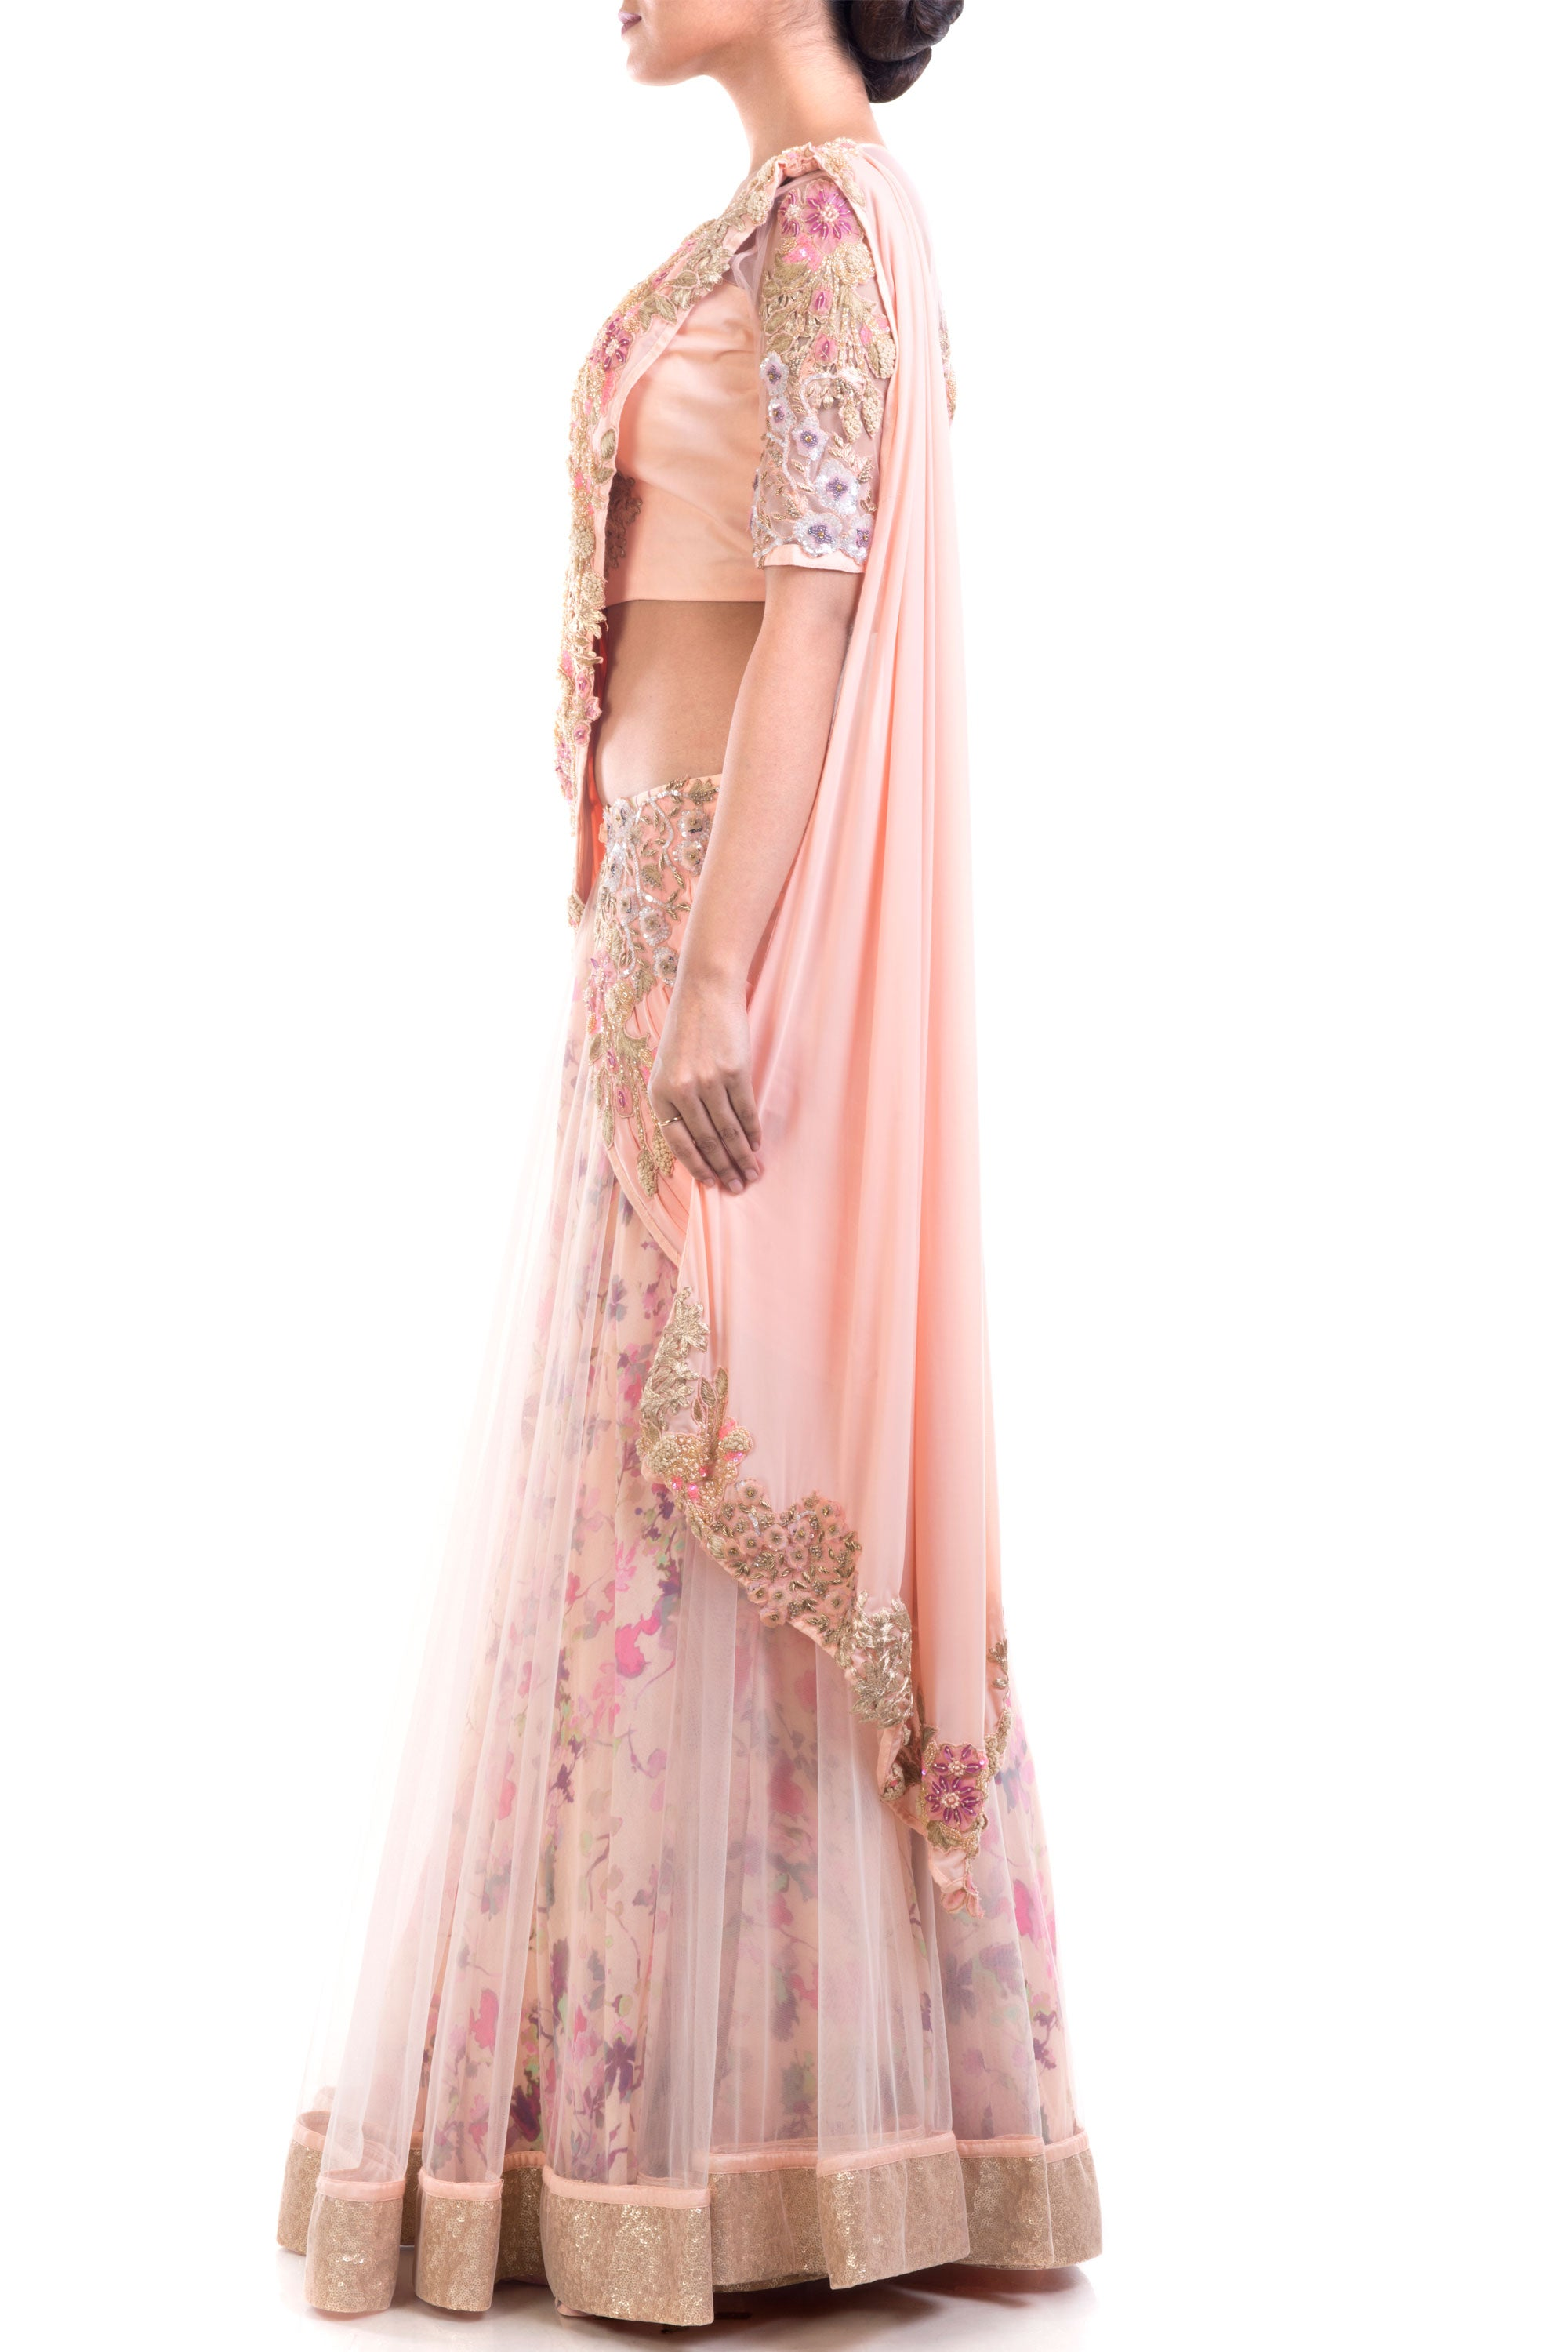 Gorgeous Draped Lehenga Gown Pattern With Print & Intricate Embroidery Detailing Side